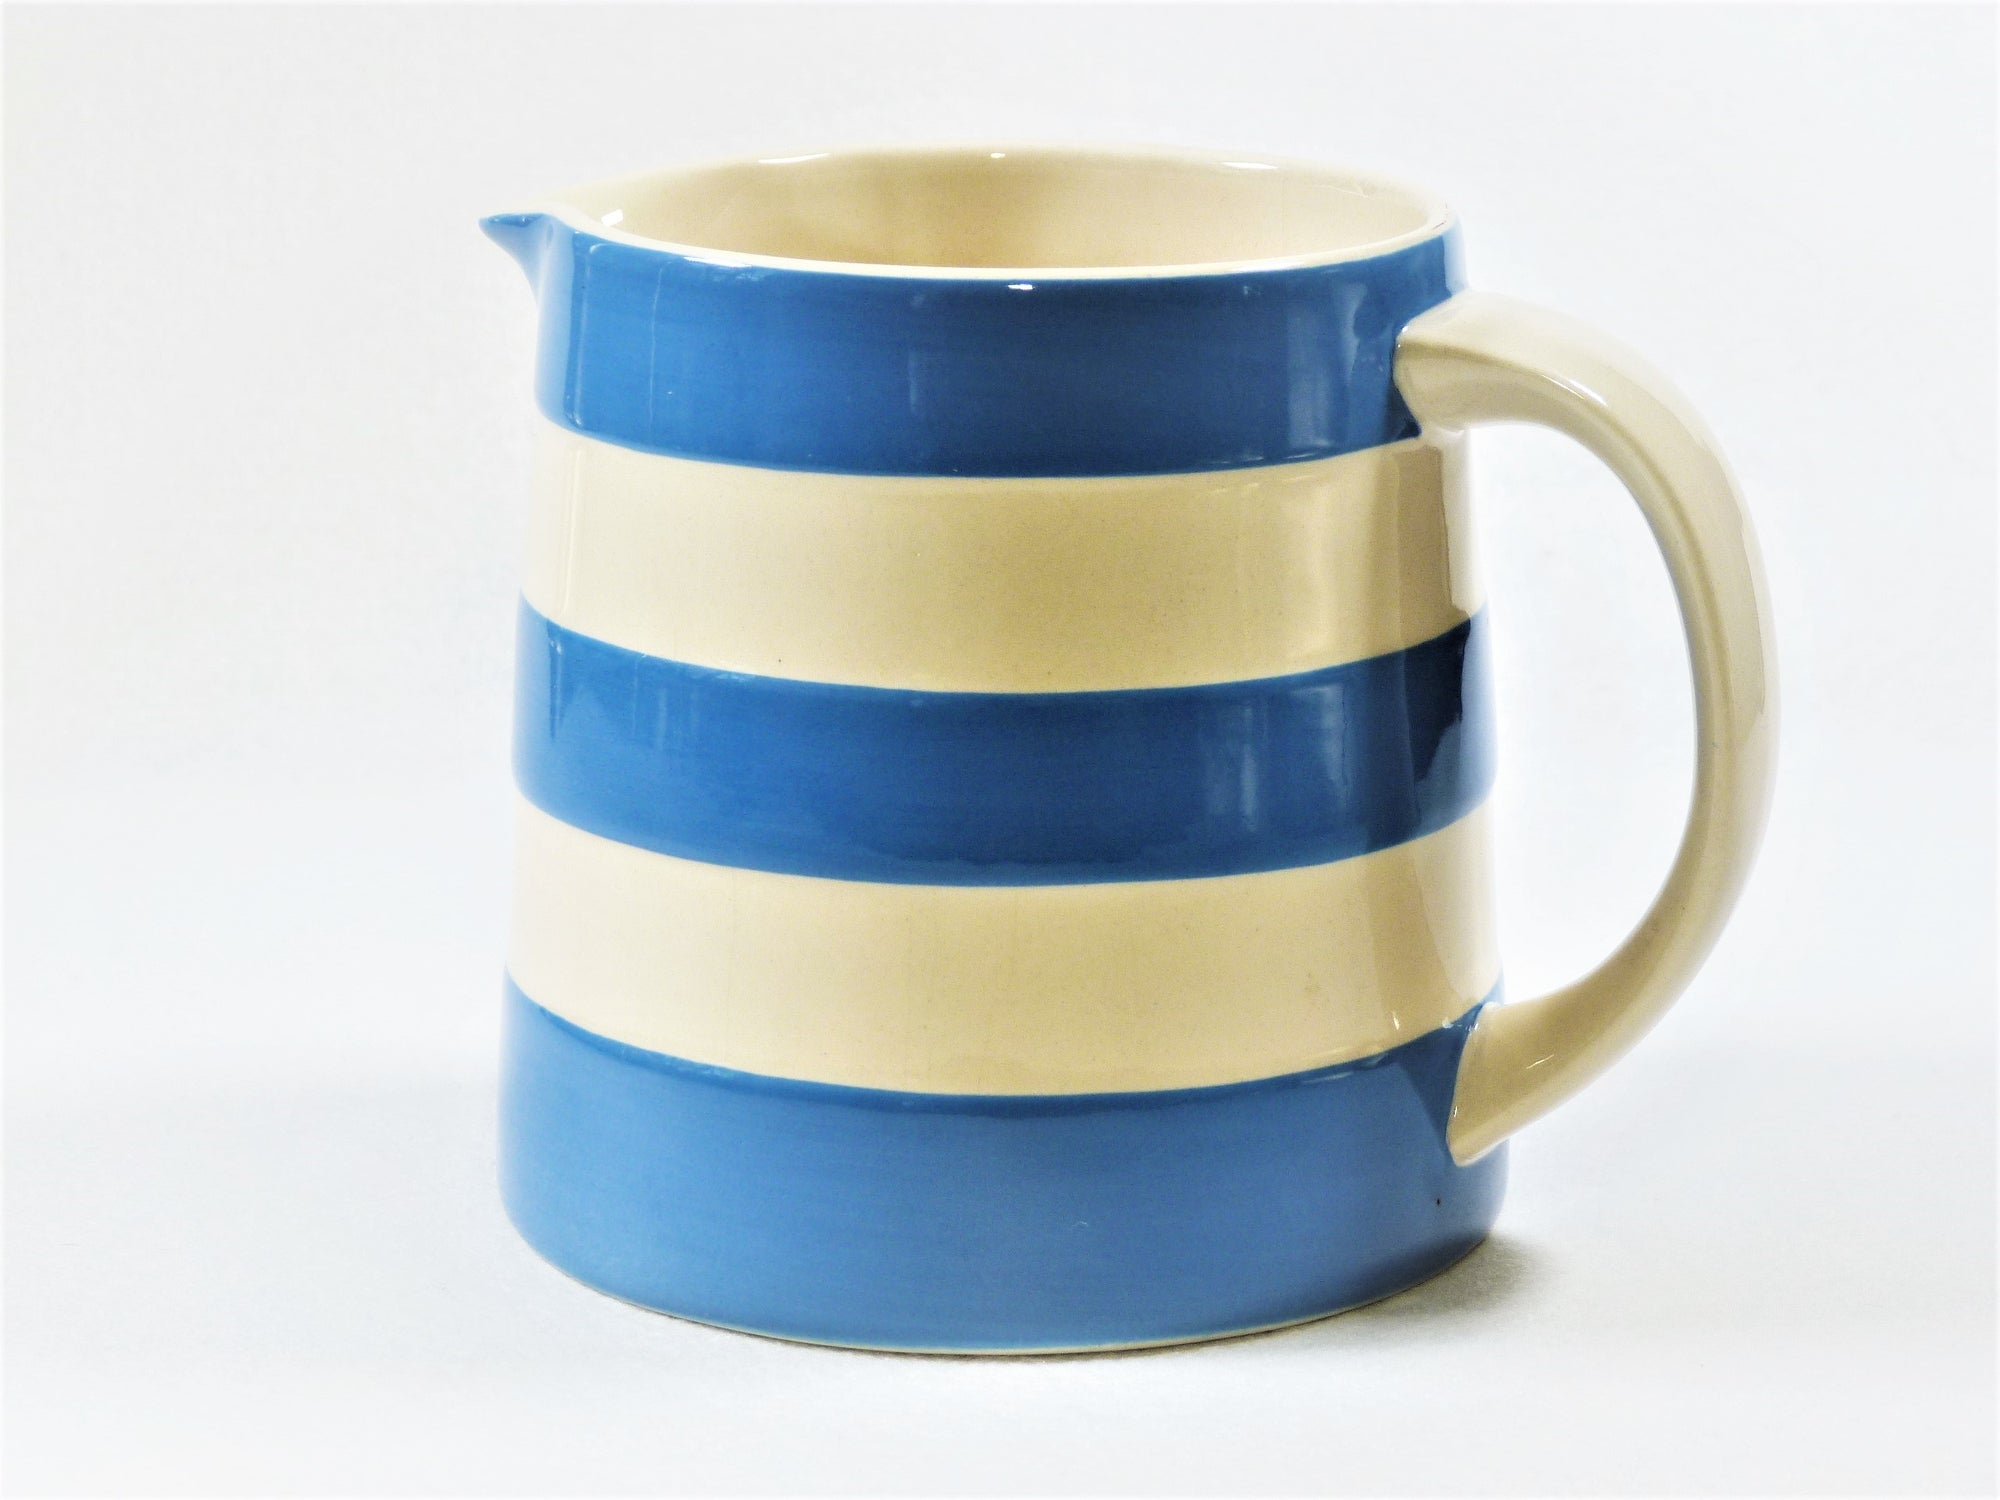 Cornishware Blue Dreadnought Jug, Iconic T G Green Blue and White Stripe Milk Jug